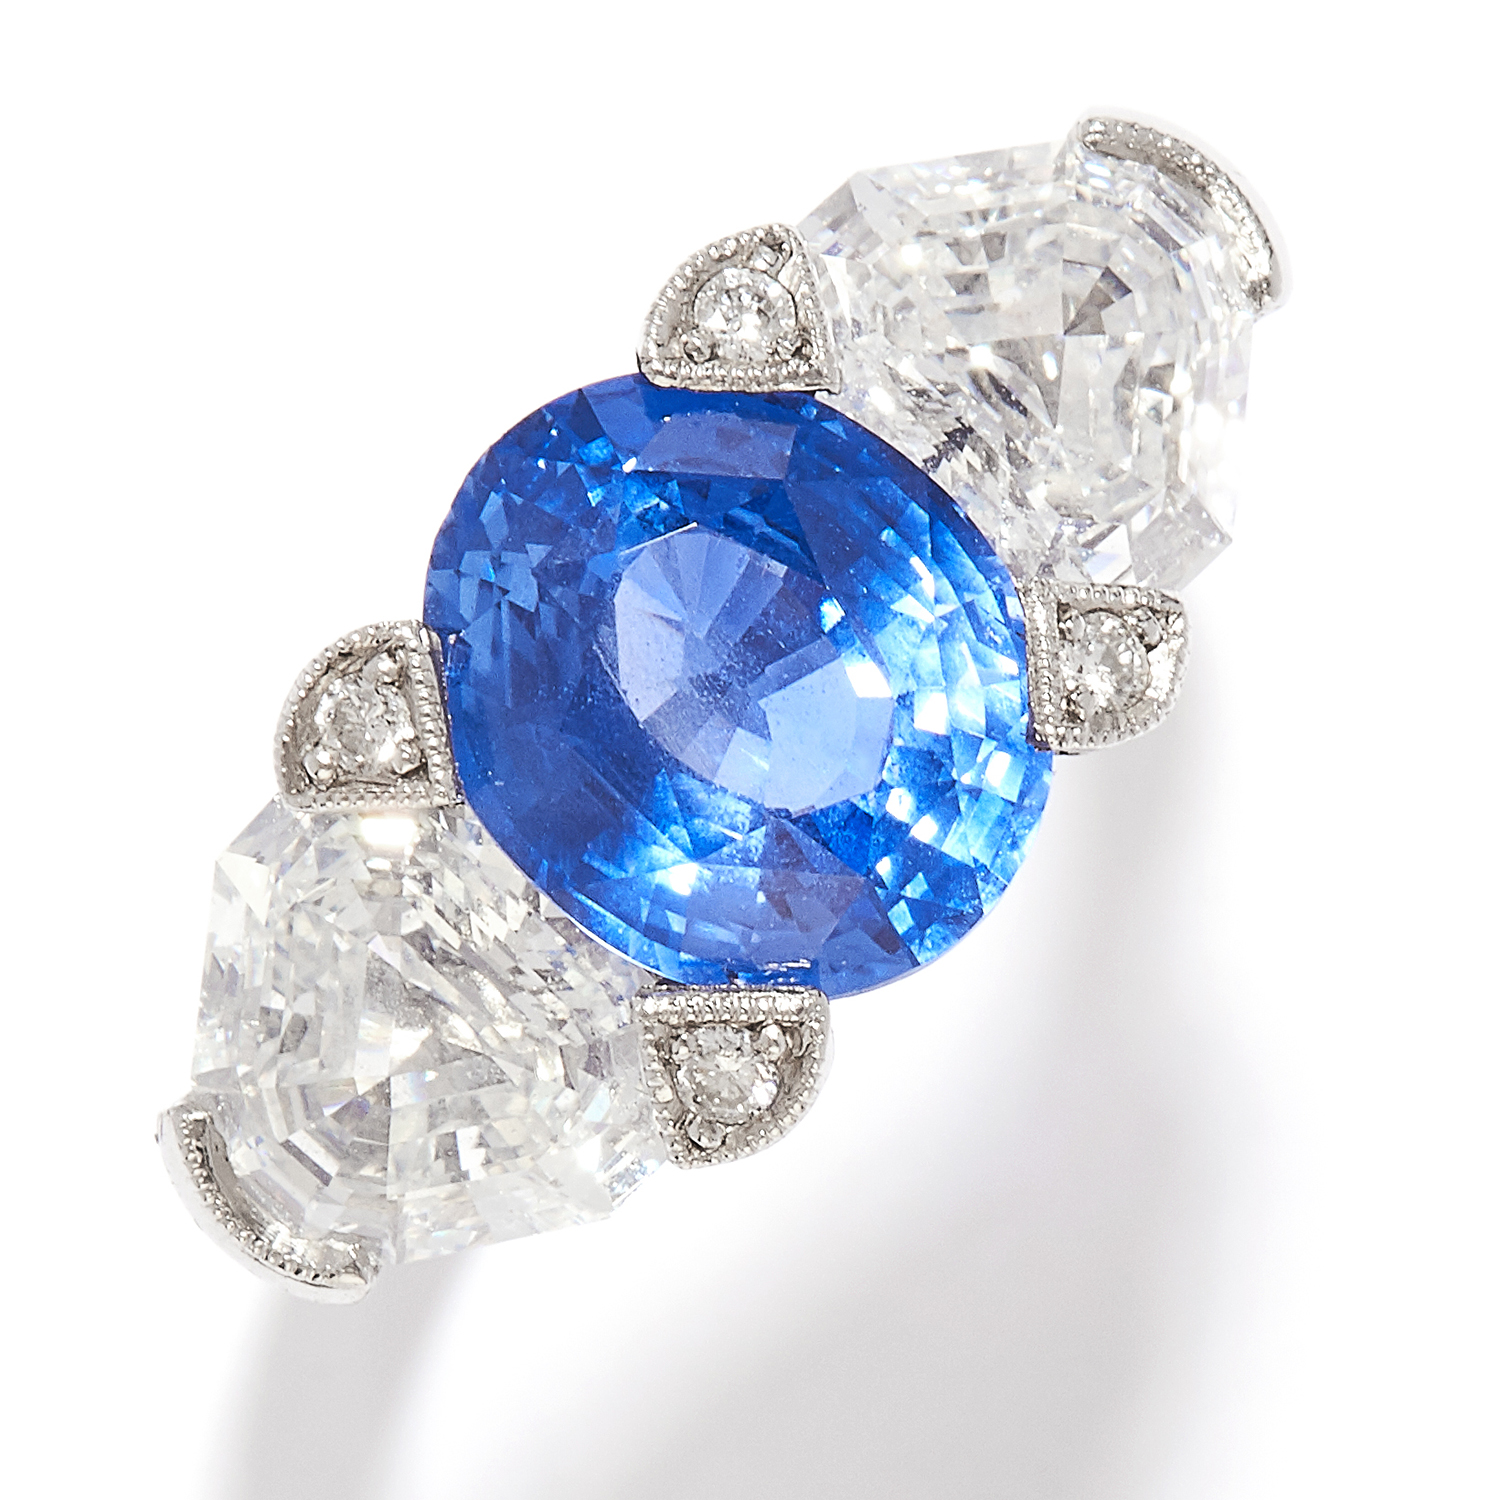 3.80 CEYLON NO HEAT SAPPHIRE AND DIAMOND RING in platinum, the oval cut sapphire of 3.80 carats